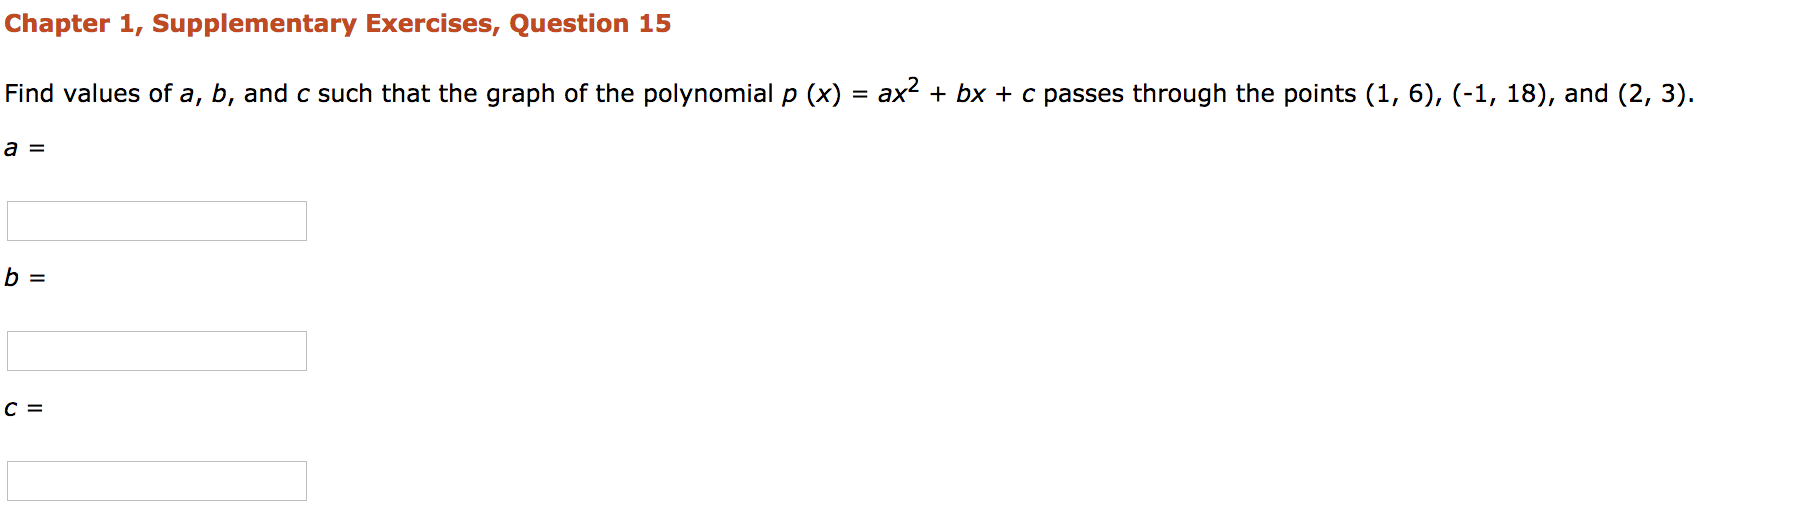 Chapter 1, Supplementary Exercises, Question 15 Find values of a, b, and c such that the graph of the polynomial p (x) = ax2